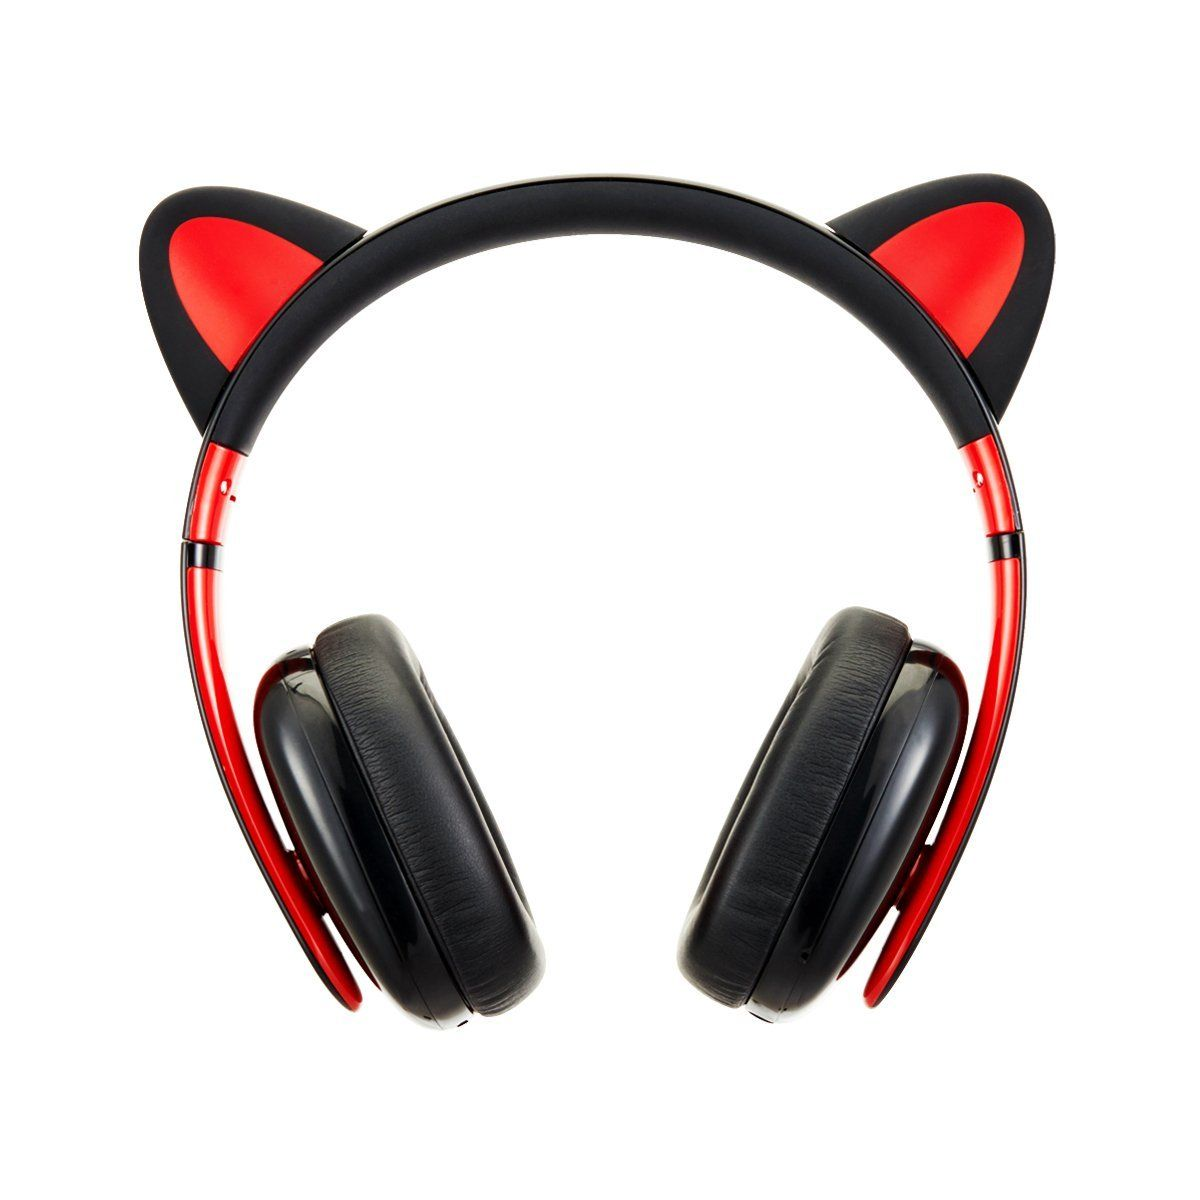 Censi Moecen Wired Cat Ear Headphones with Detachable Cat Ears (Black/Red)